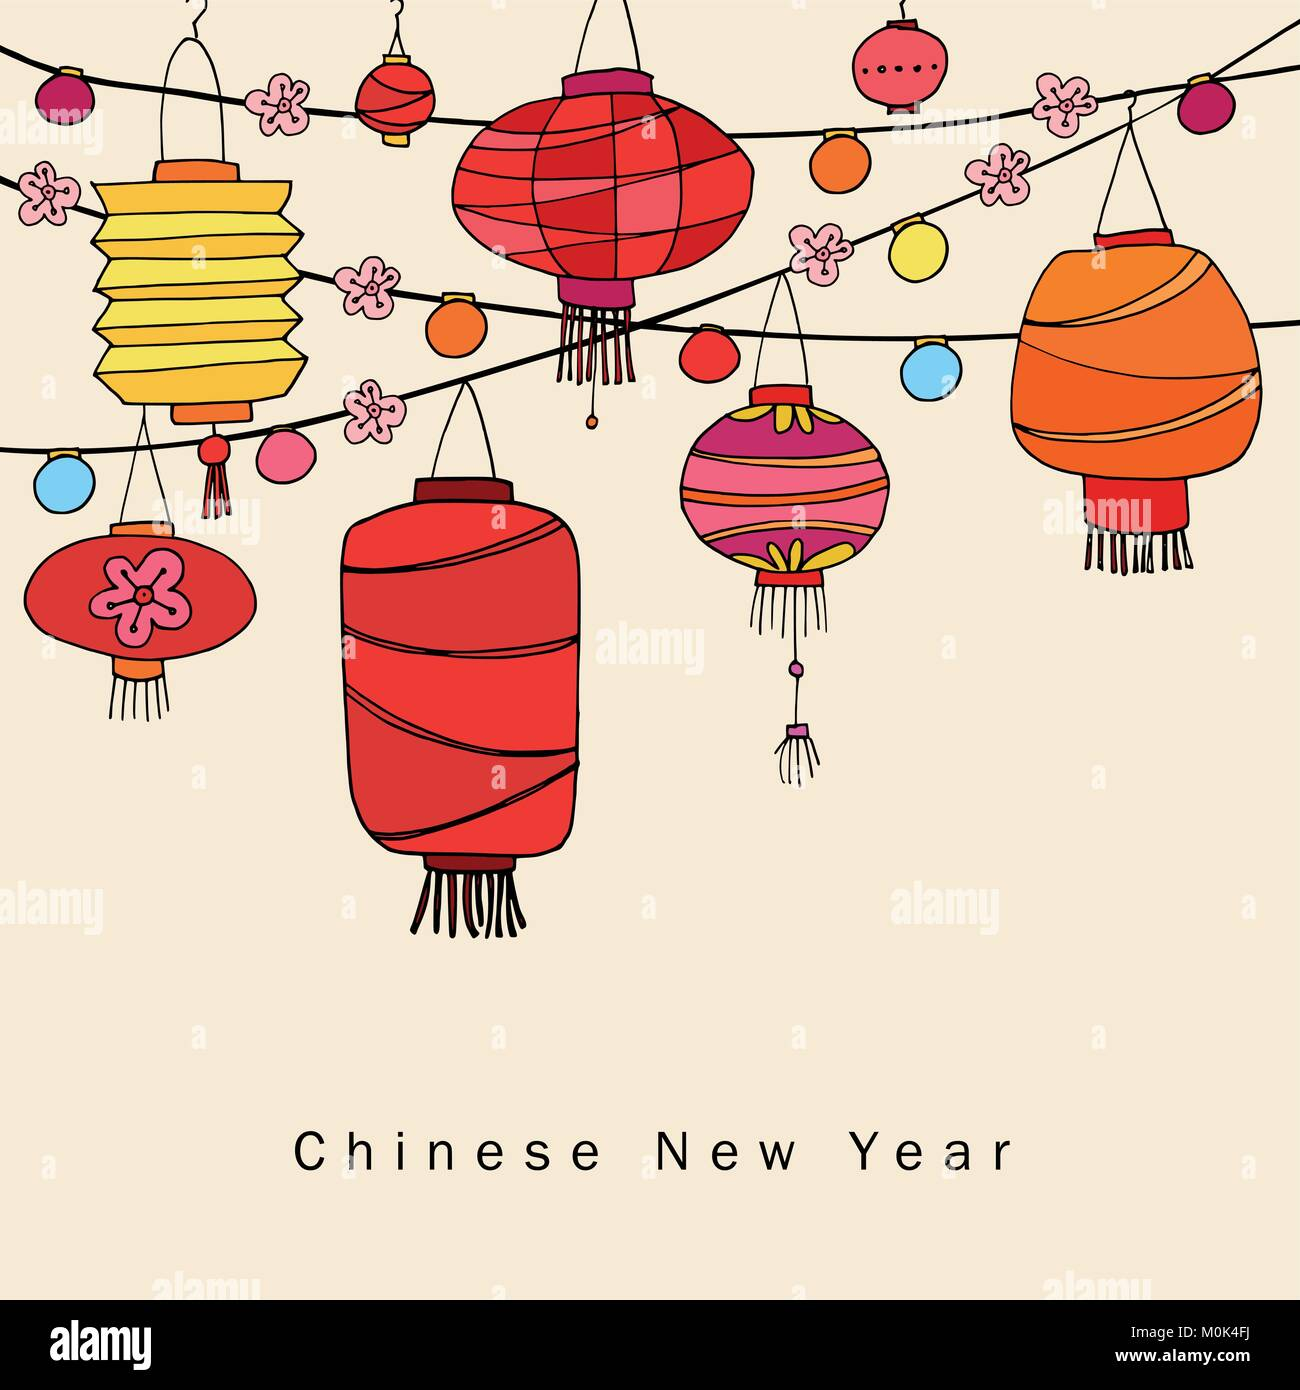 chinese new year greeting card invitation with string of hand drawn red lanterns asian party decoration vector illustration background